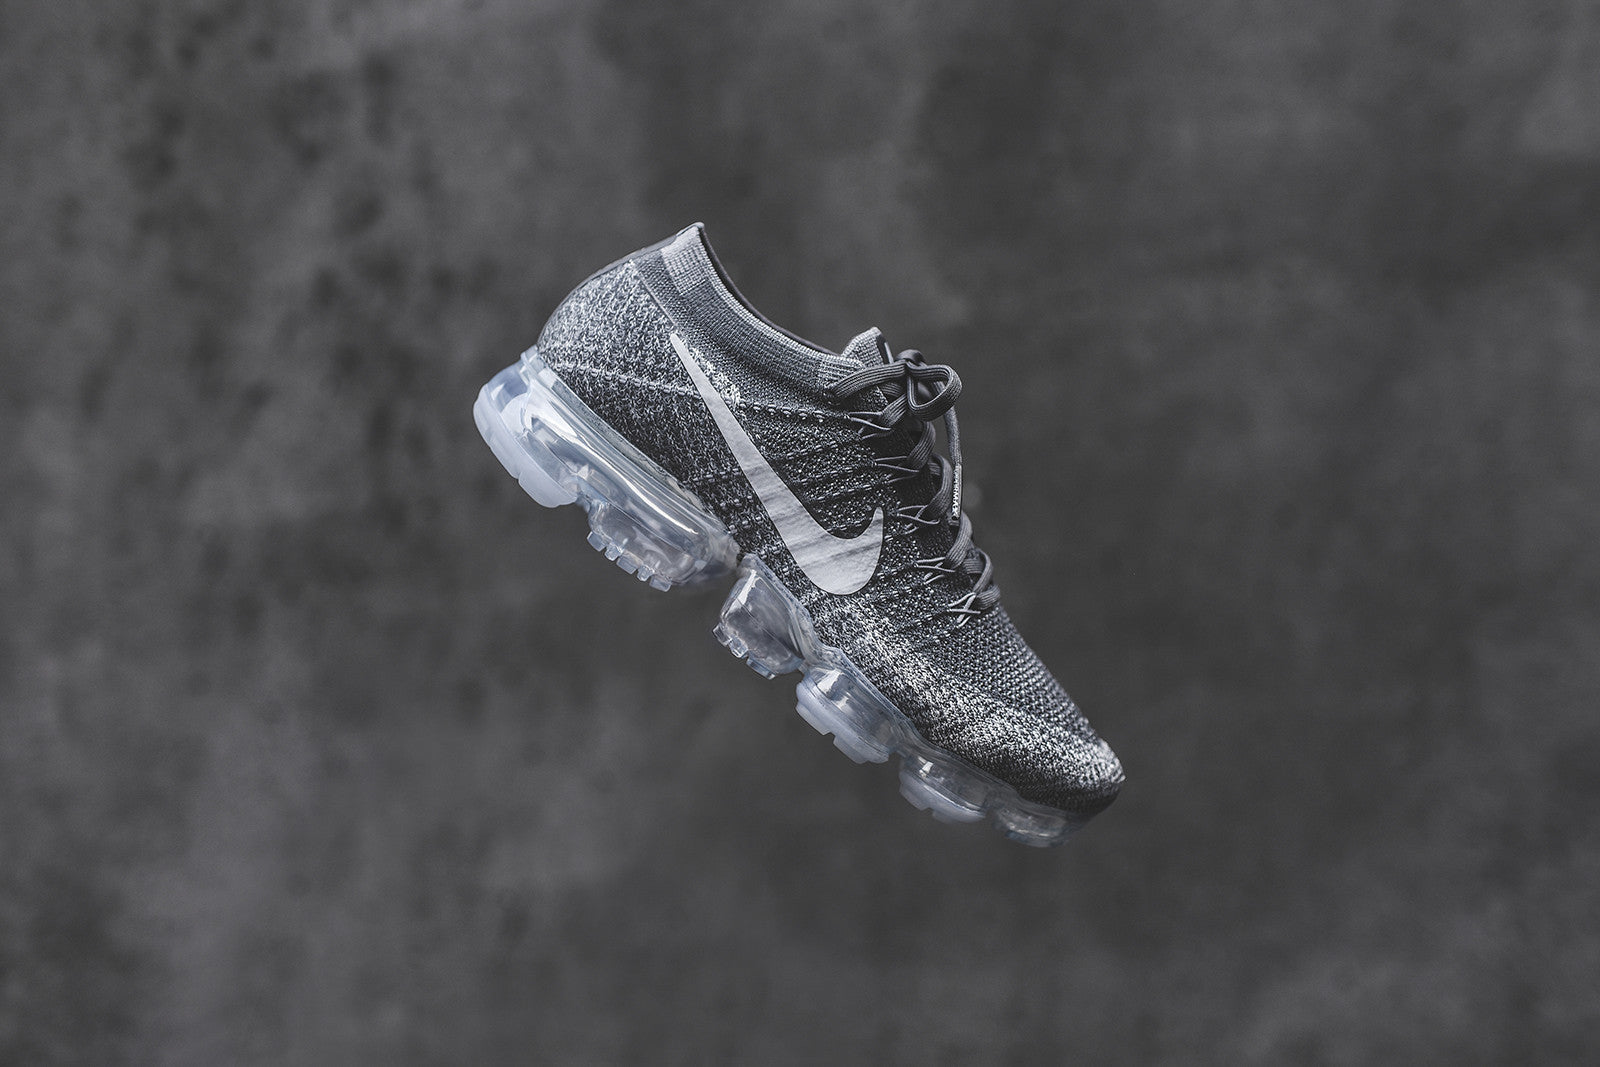 0e5fedbf2b8 Nike WMNS Air VaporMax Flyknit - Dark Grey   Black   Wolf Grey. April 26